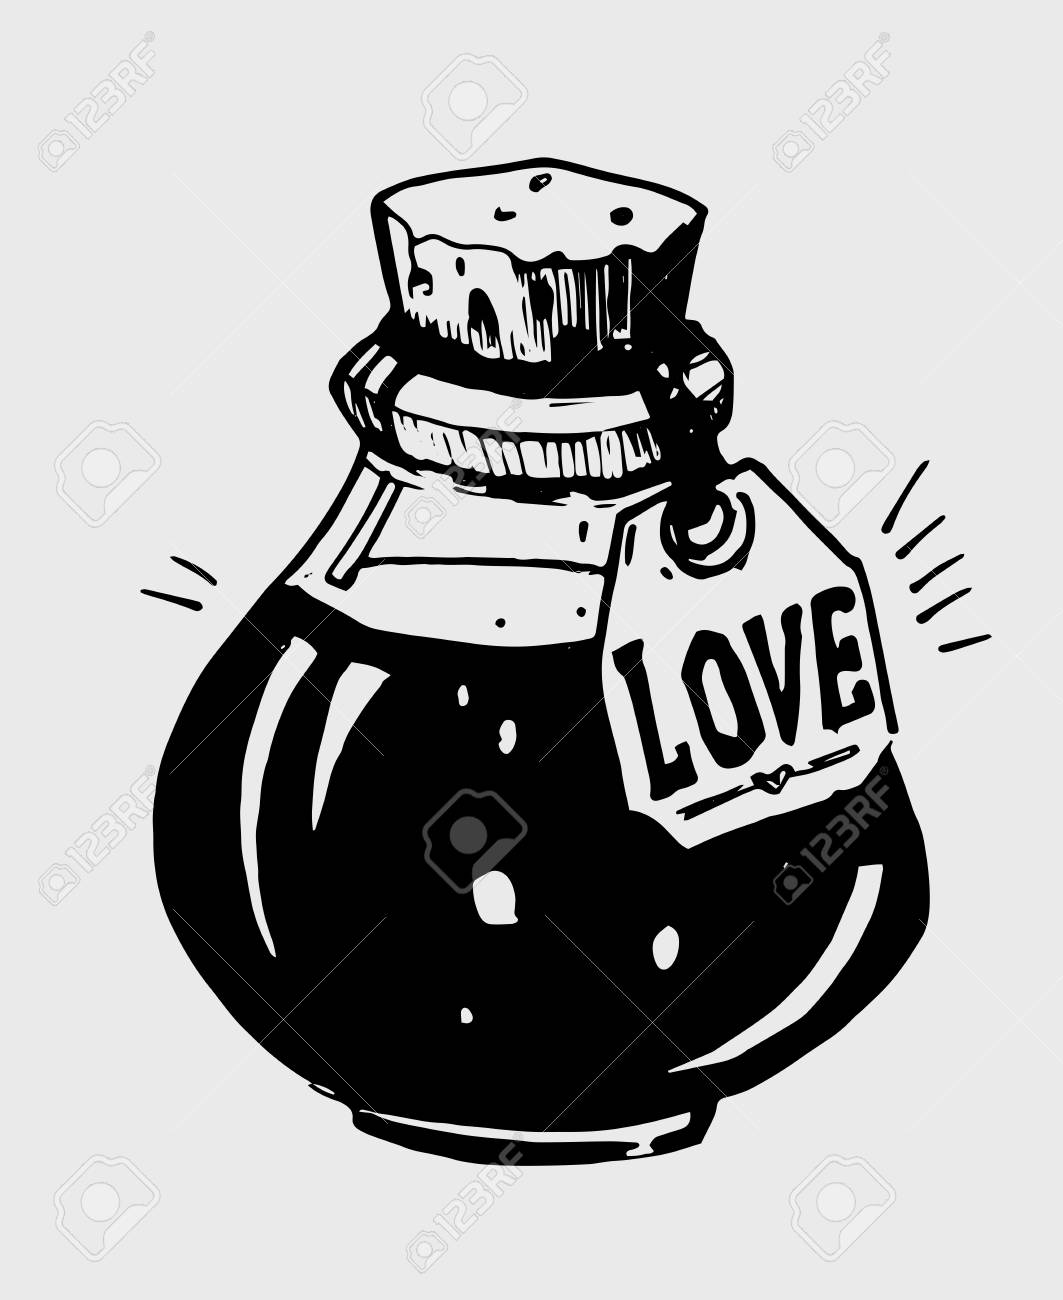 1063x1300 Bottle Of Love Potion. Hand Drawn Illustration Converted To Vector